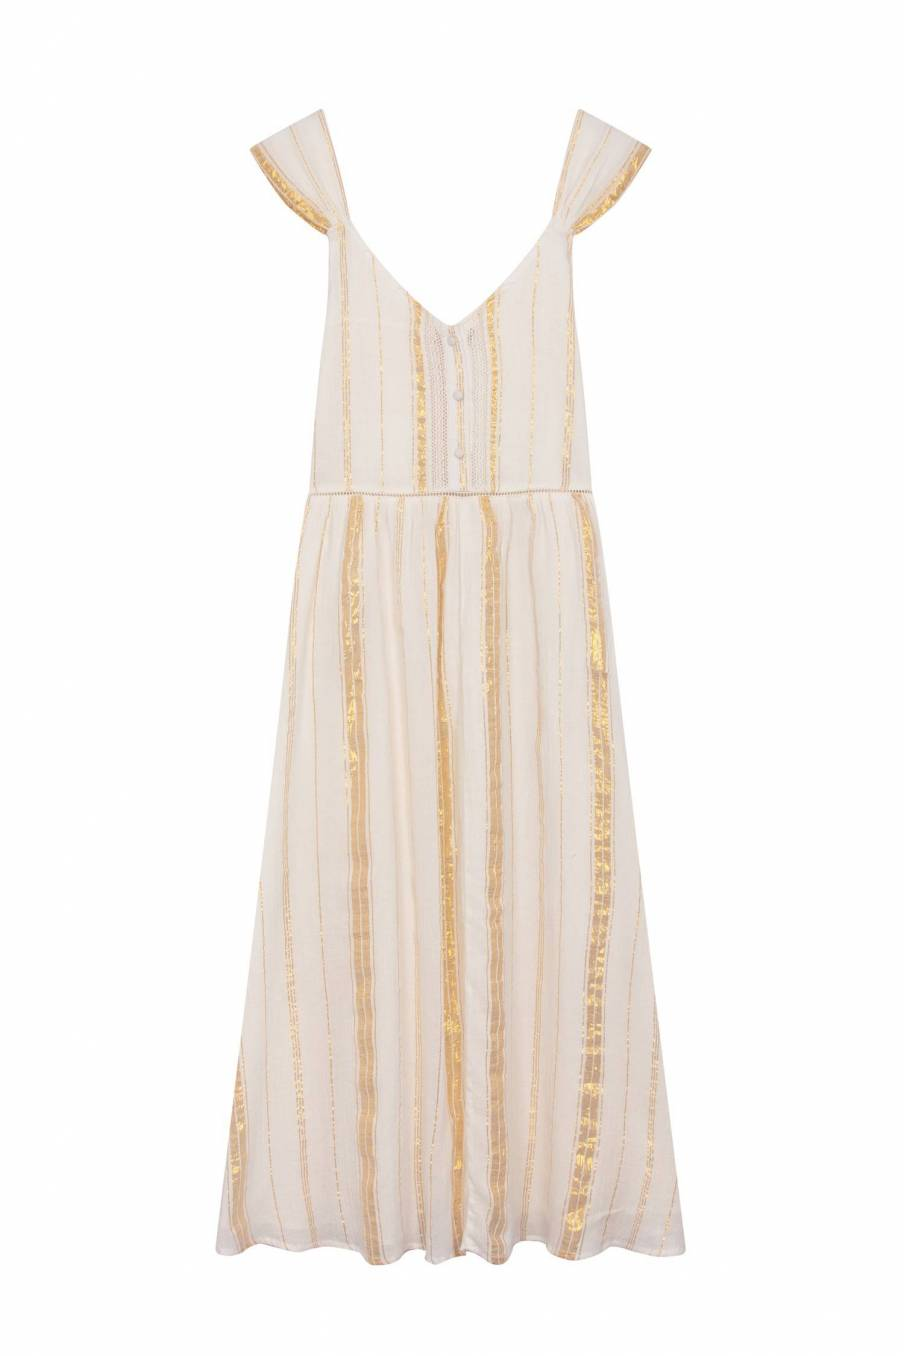 Dress Boha White & Gold Stripes